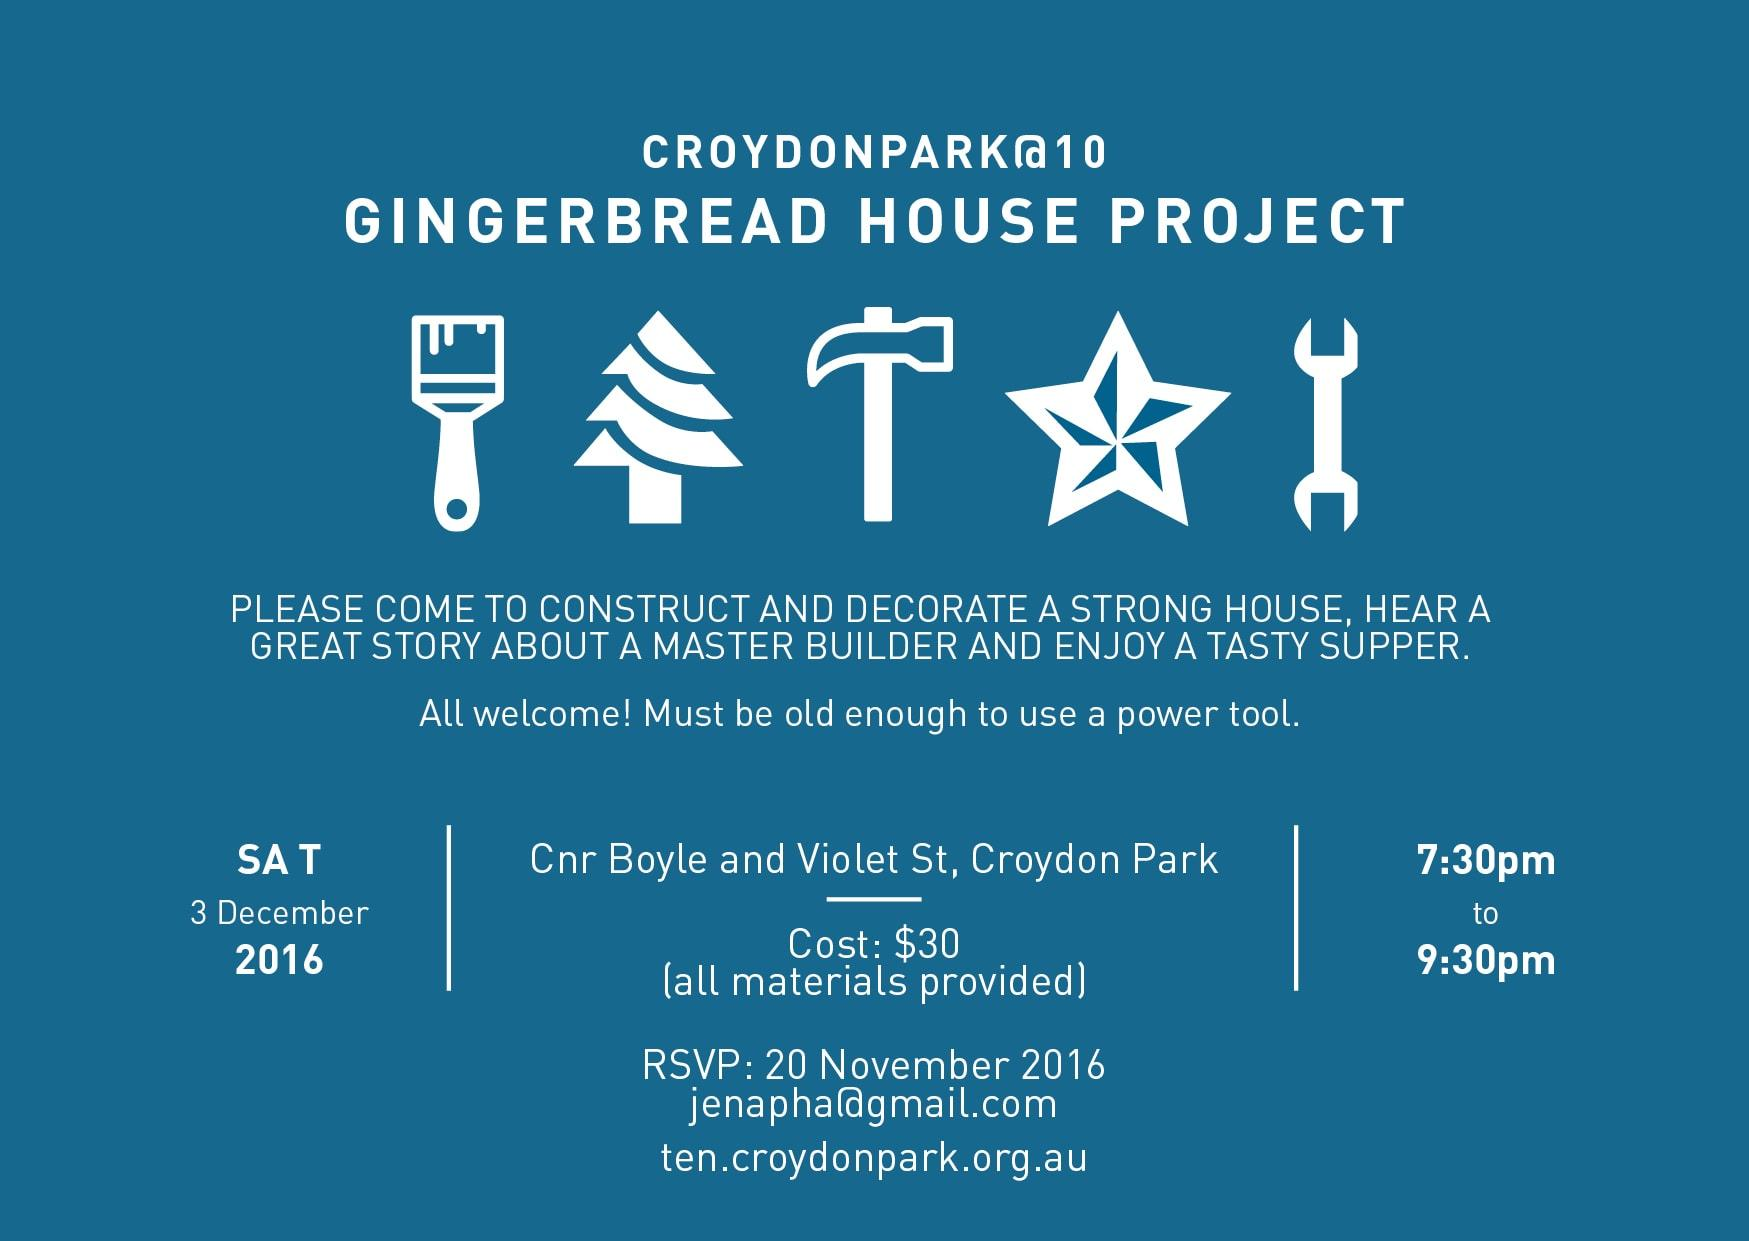 Gingerbread House Project Saturday 3 December